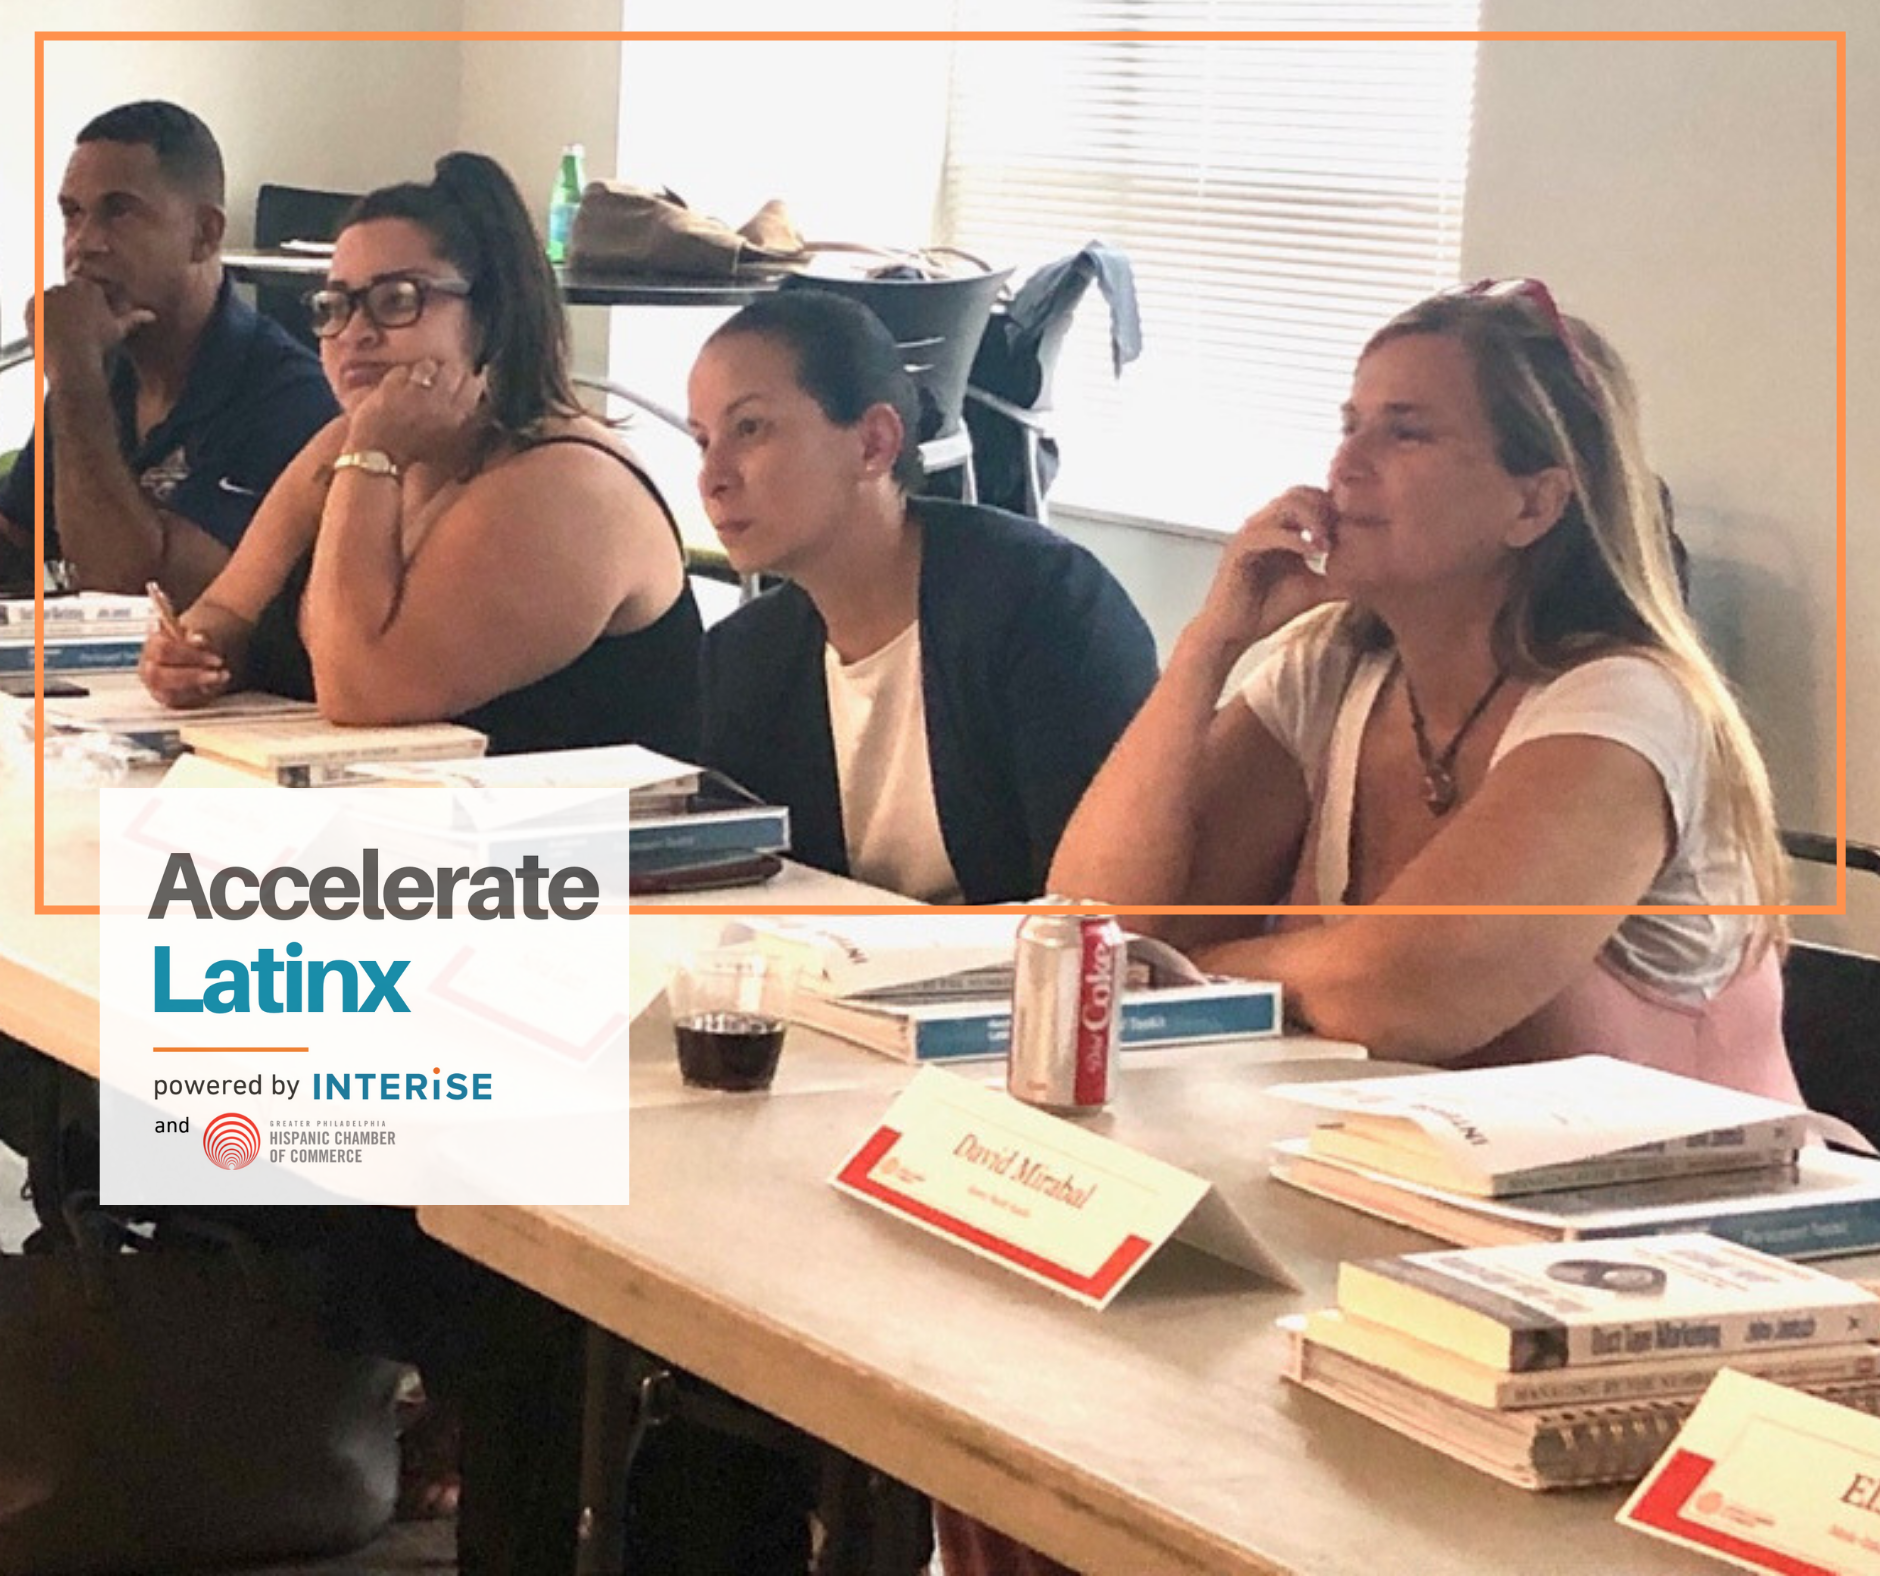 Accelerate Latinx Philadelphia